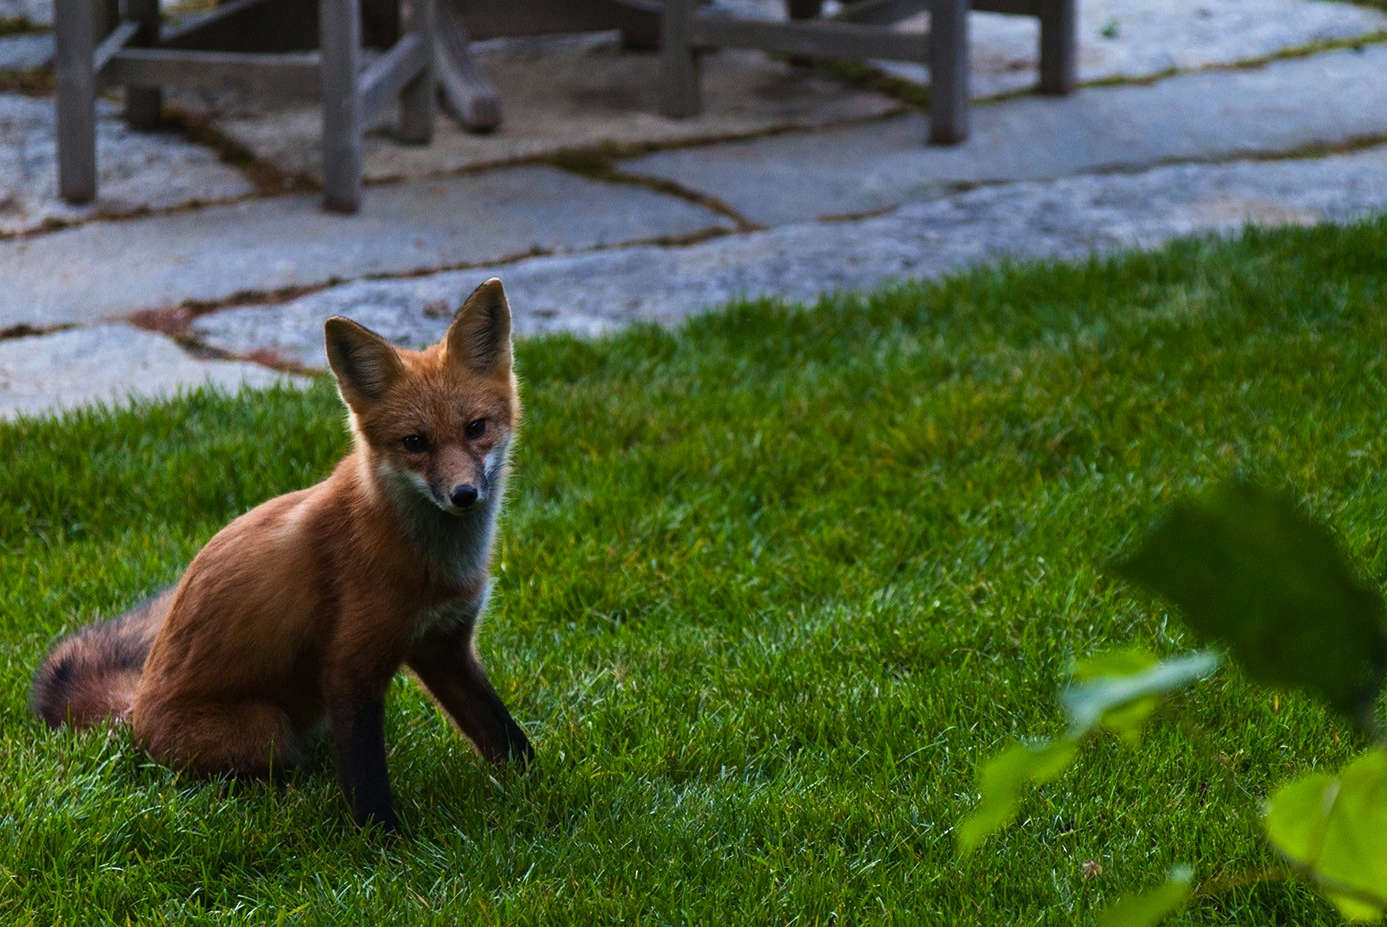 Foxes and other wildlife are daily reminders of the proximity of the national park.